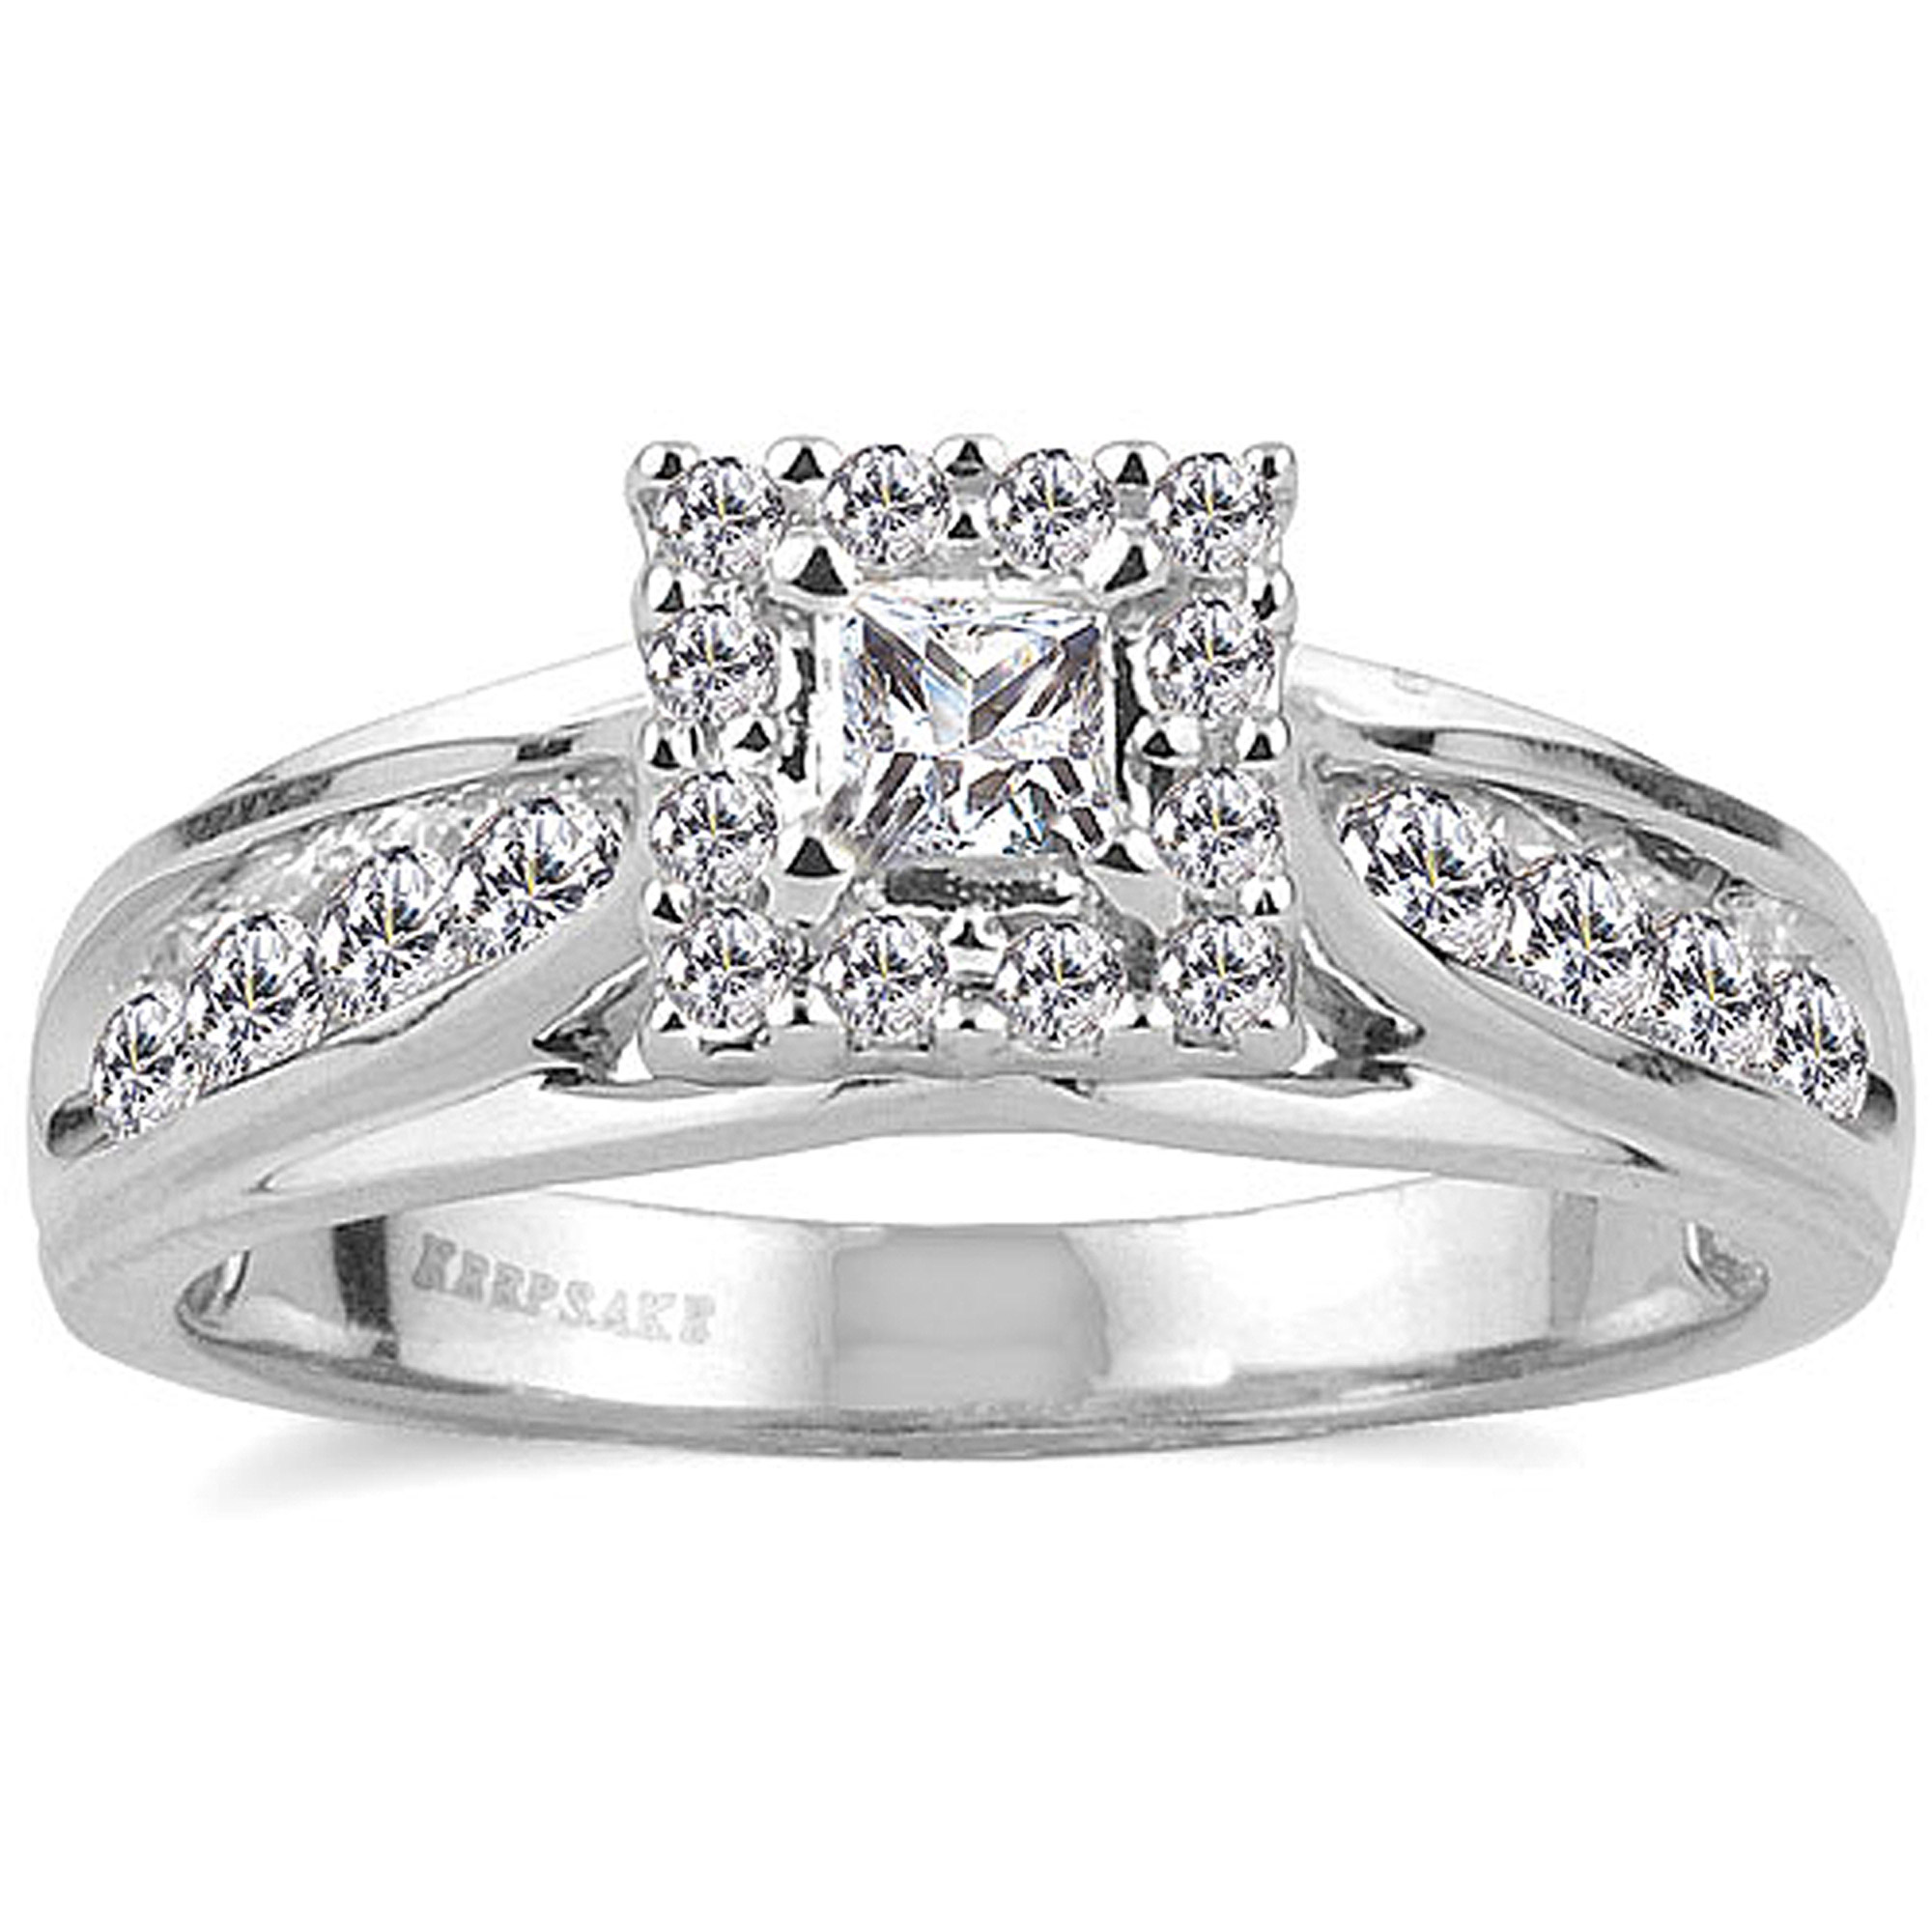 Keepsake Melody 1/2 Carat T.W. Certified Diamond 10kt White Gold Ring Pictures